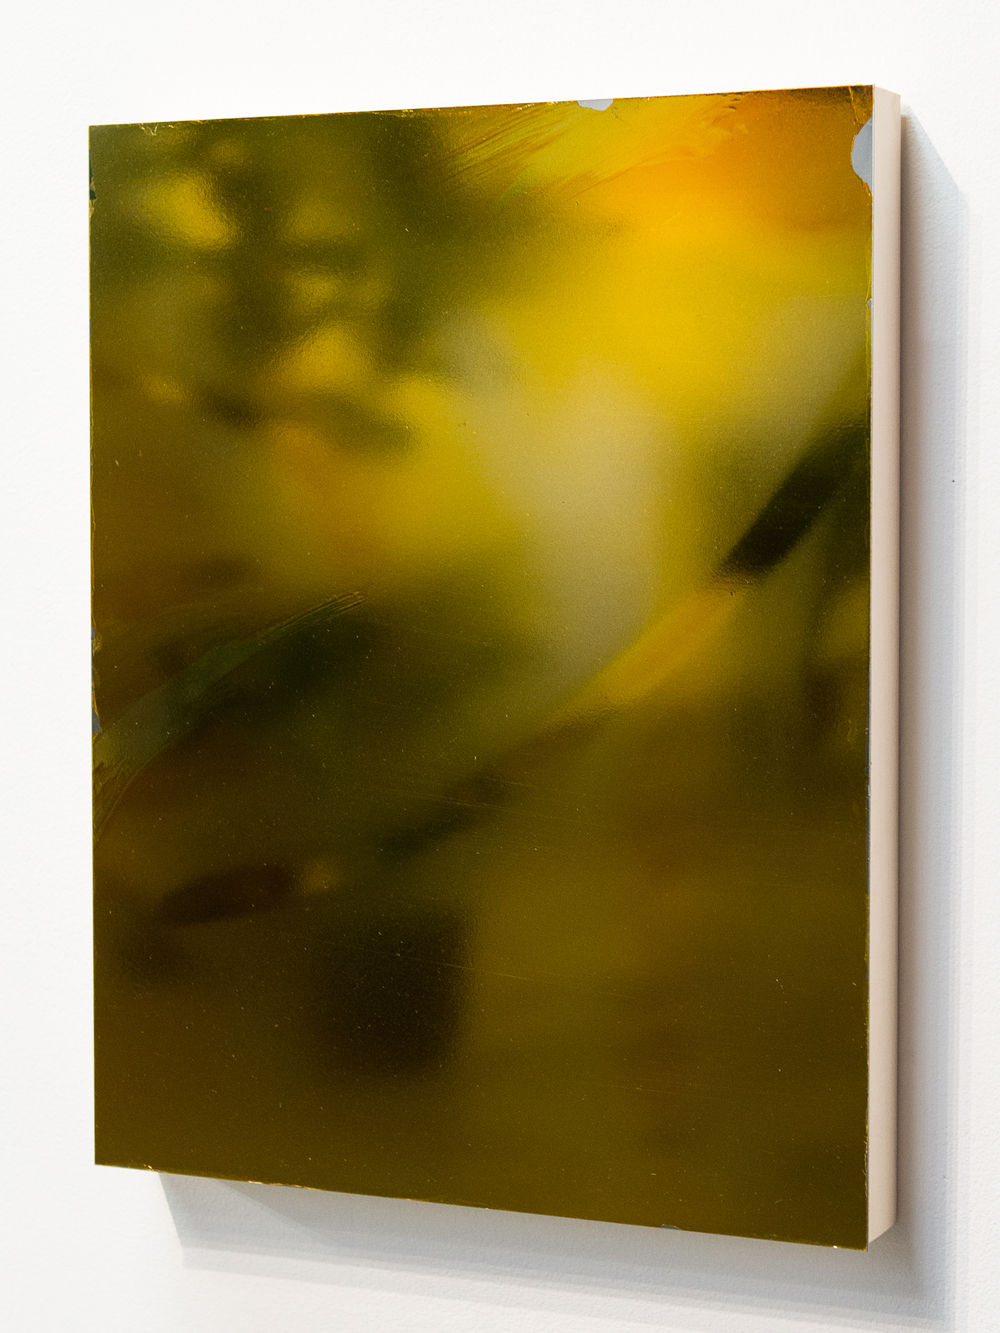 MLSL_11_Bunny, 2015  Gold tint on stainless steel  18 x 14 in (45.72 x 35.56 cm)